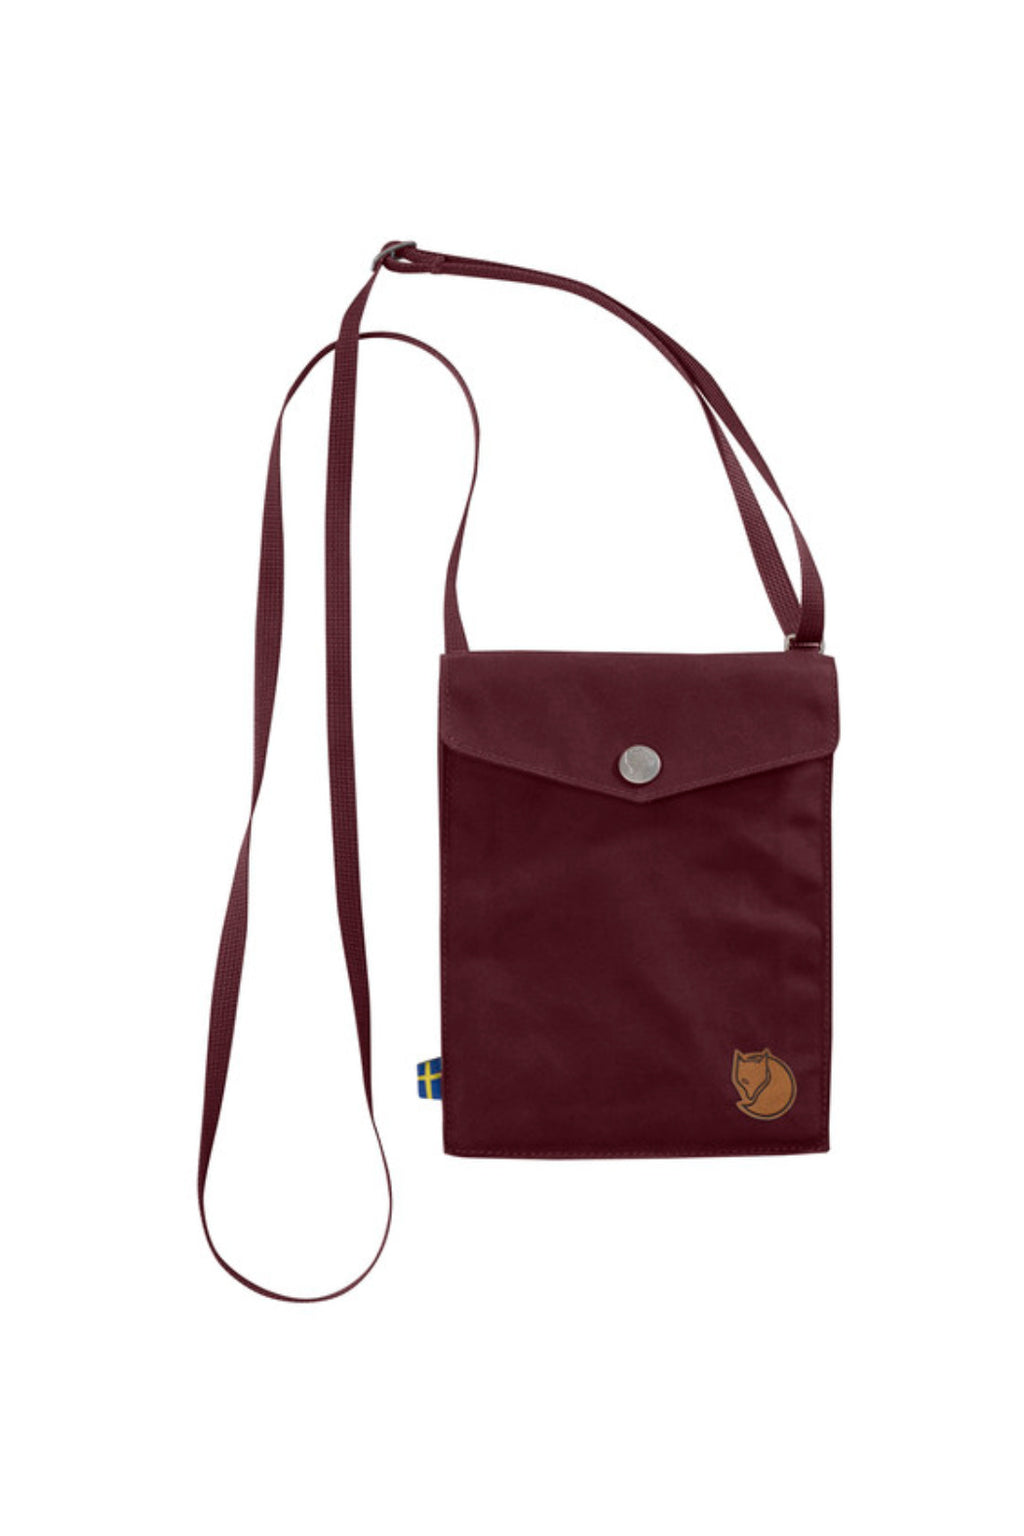 Fjällräven Pocket Shoulder Bag - Dark Garnet